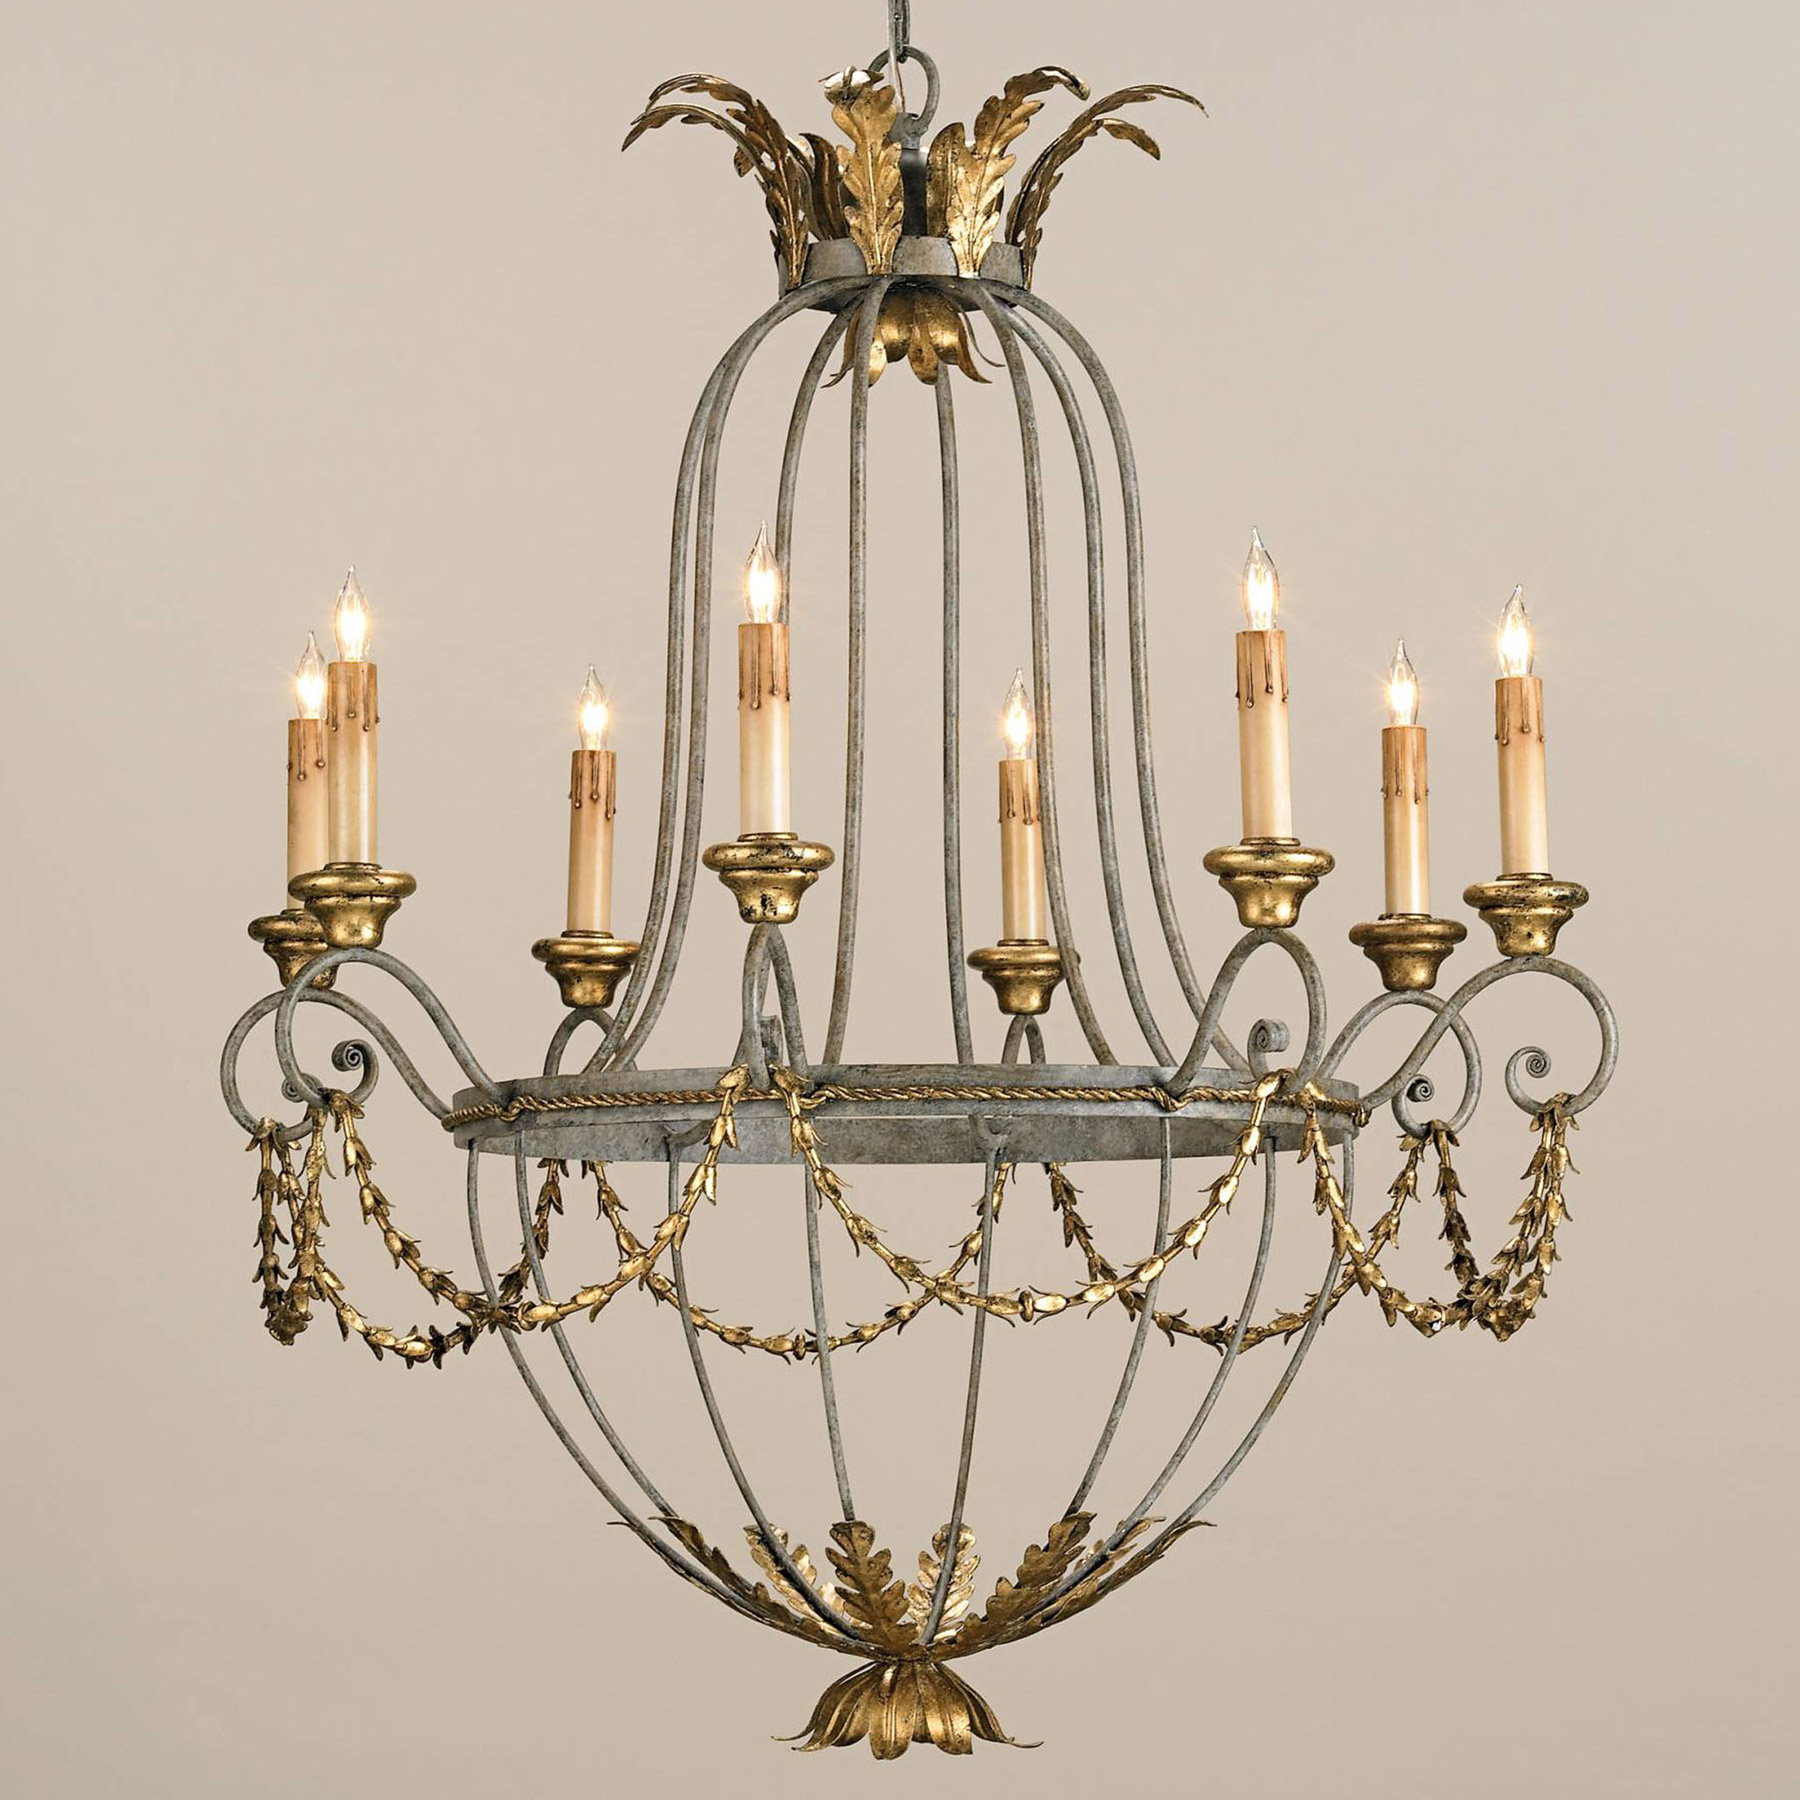 Currey And Company Orb Chandelier: Currey Lighting Chandeliers